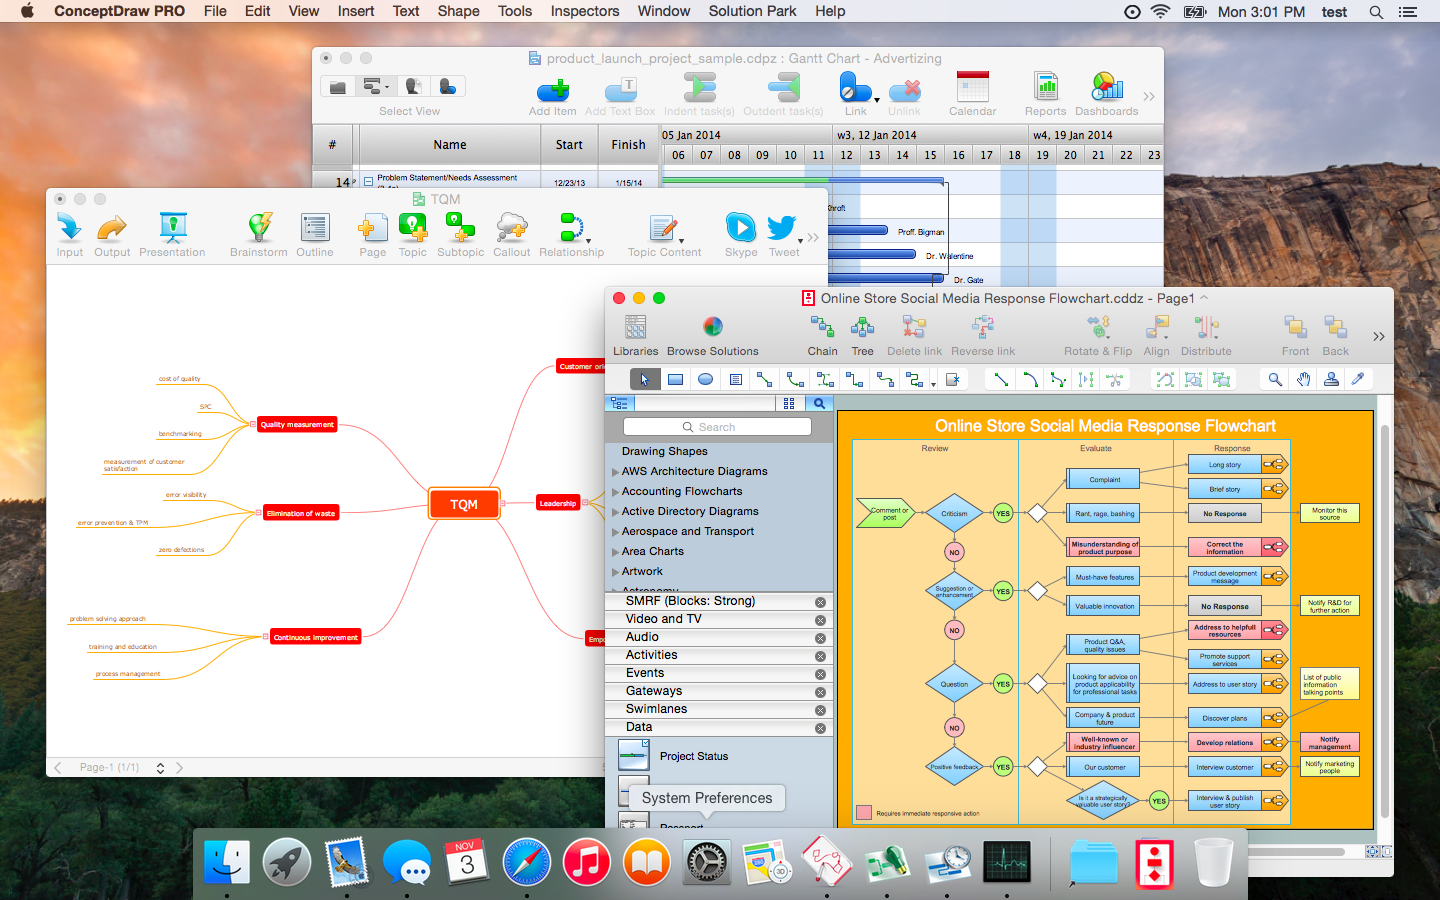 ConceptDraw Applications support Yosemite